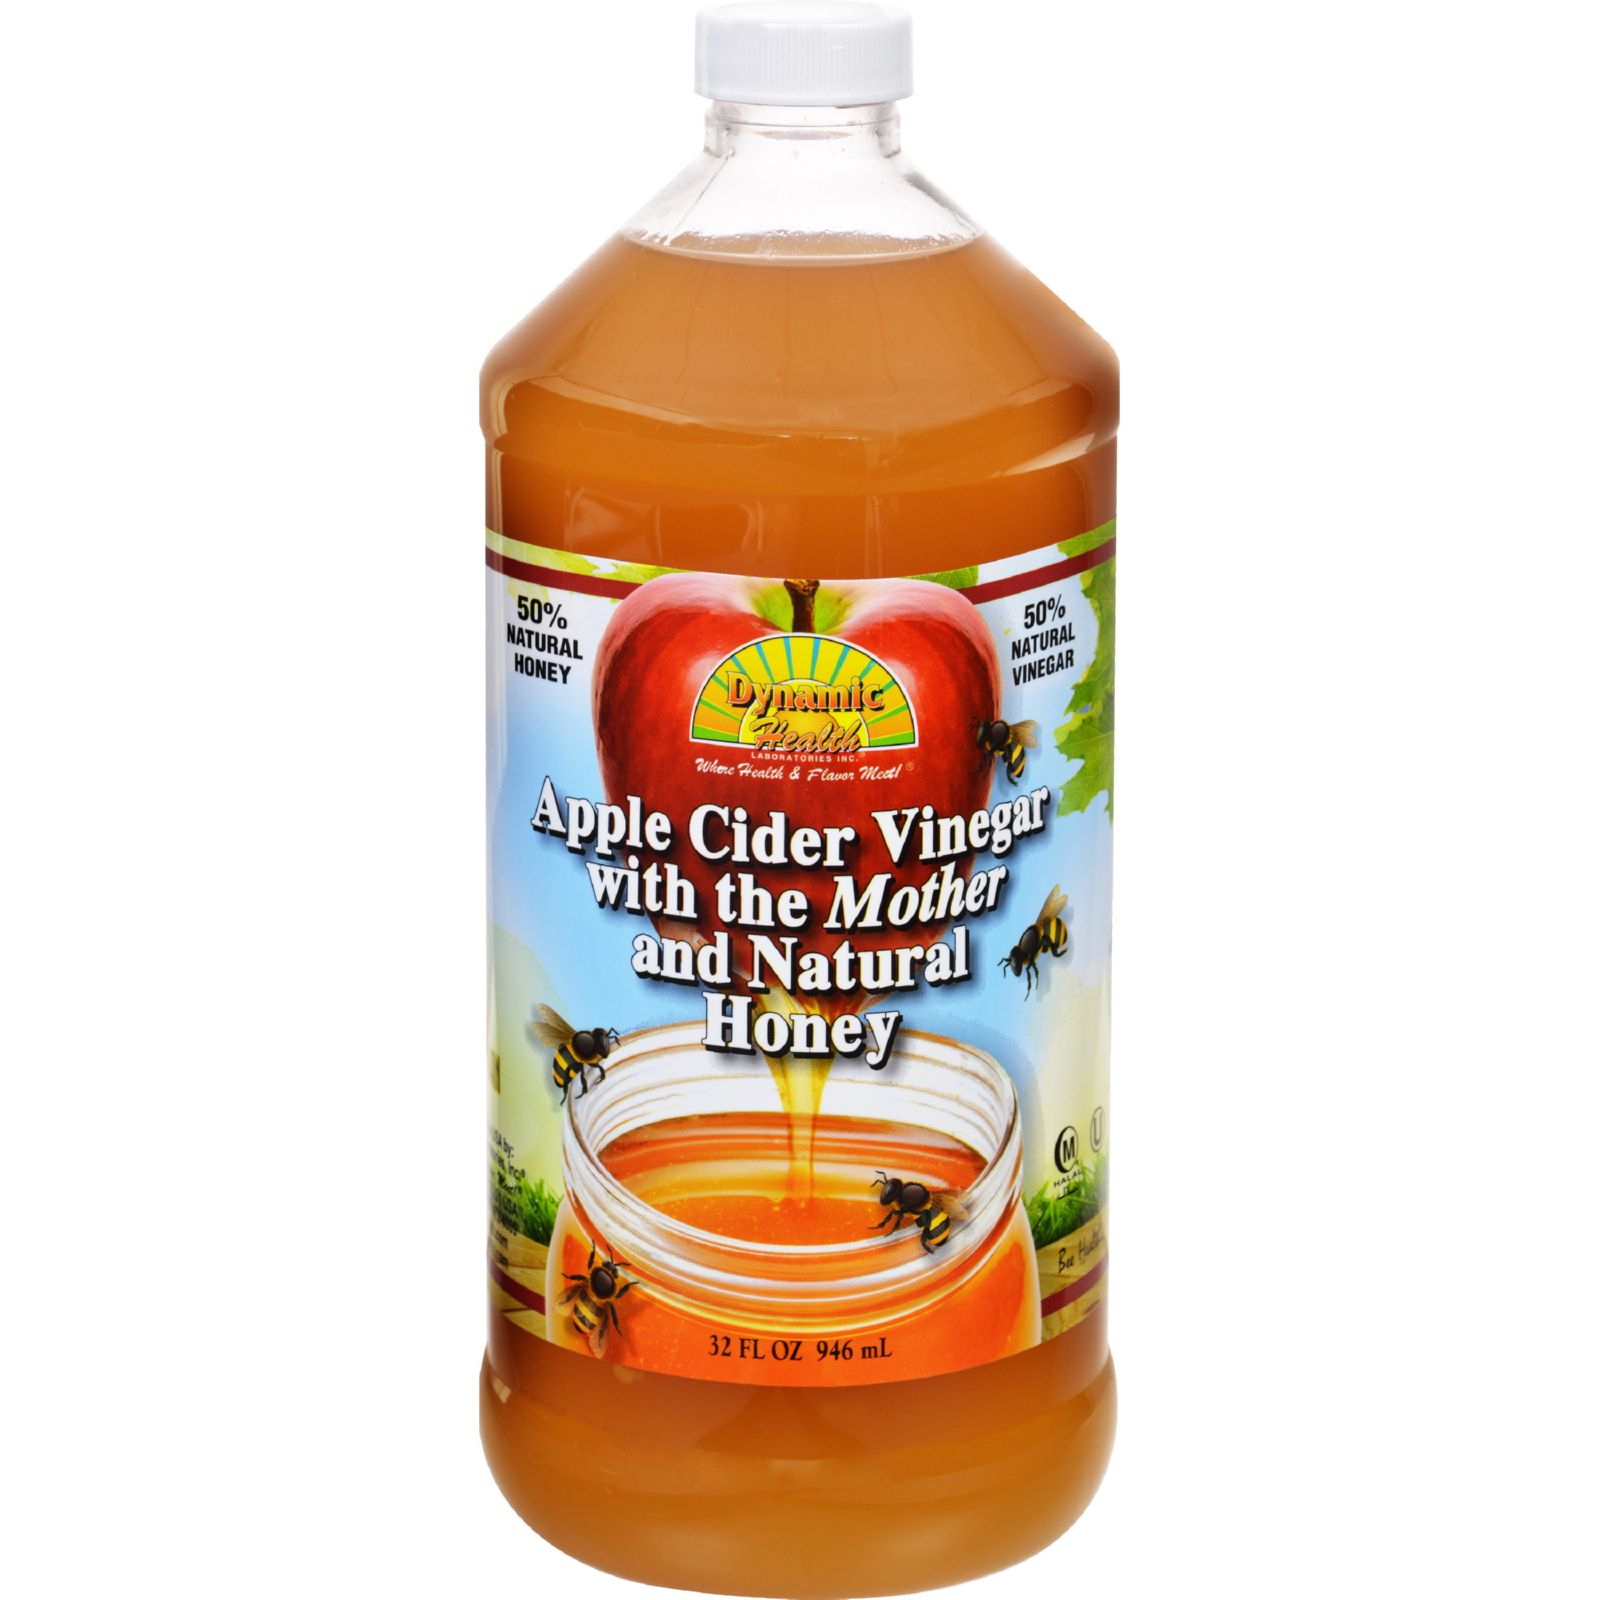 Dynamic Health Apple Cider Vinegar with the Mother and Natural Honey Plastic Bottle 32 oz by Dynamic Health Labs.